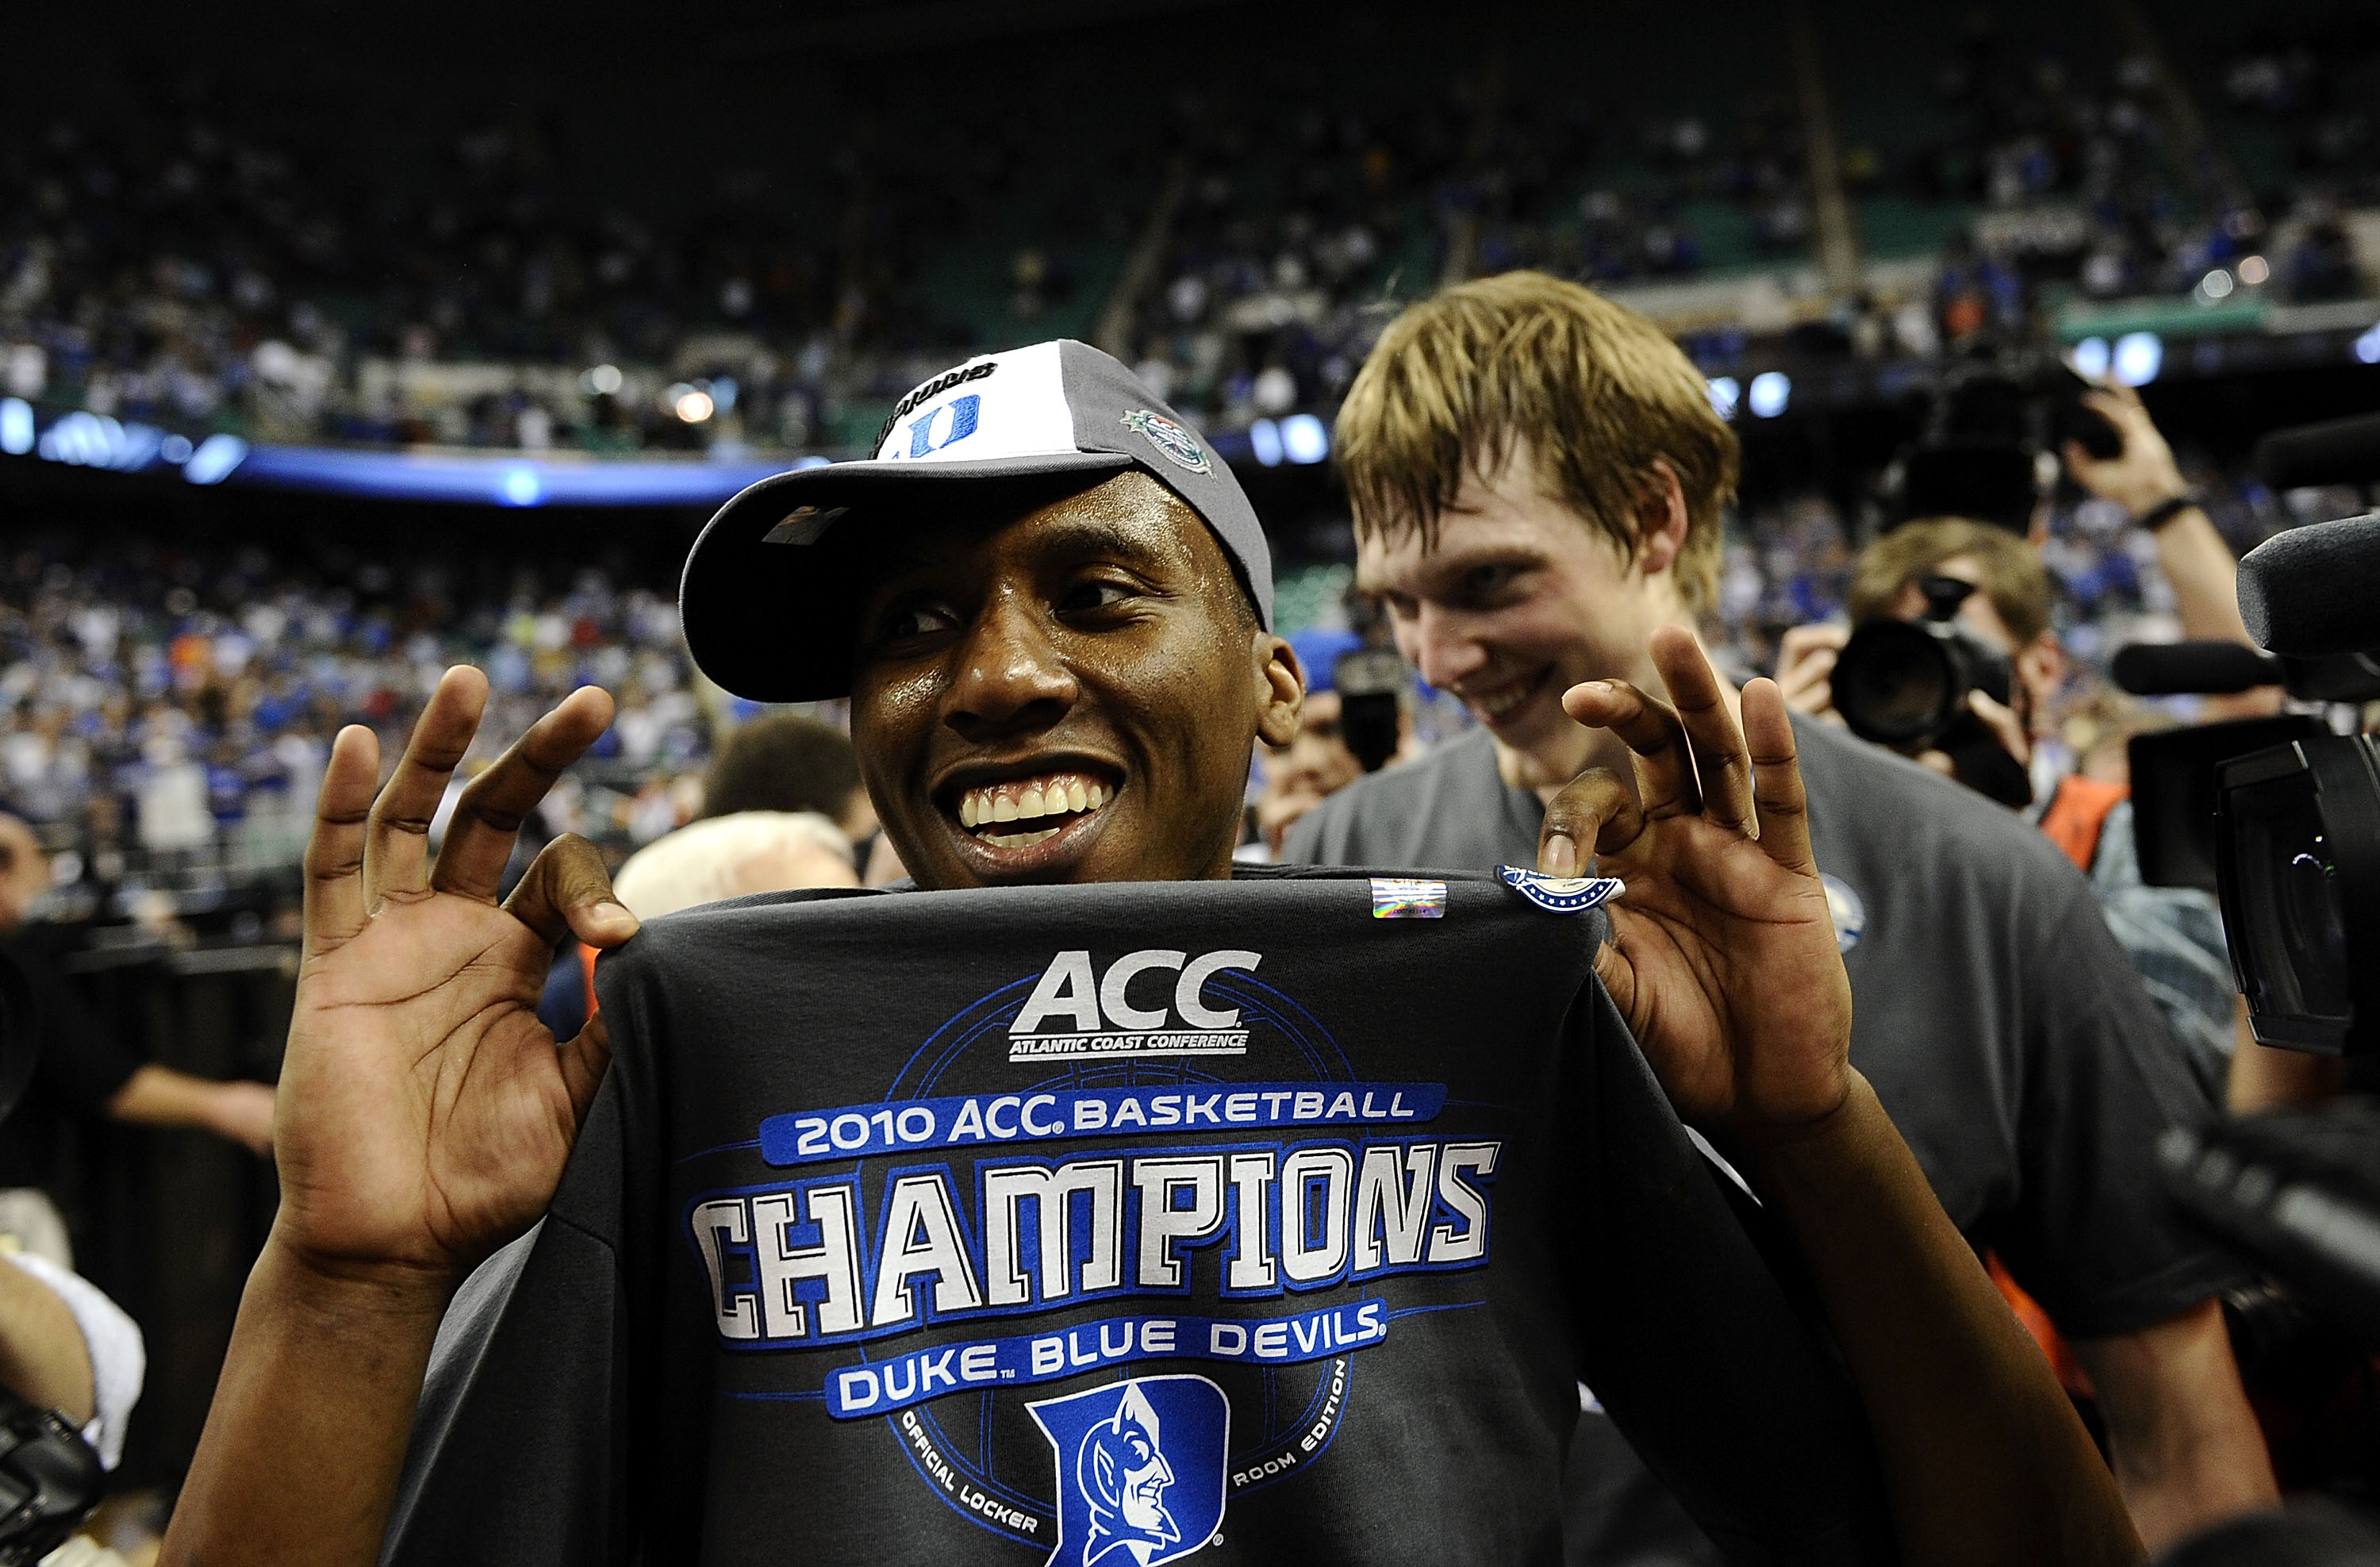 GREENSBORO, NC - MARCH 14:  Nolan Smith #2 of the Duke Blue Devils celebrates win against the Georgia Tech Yellow Jackets in the championship game of the 2010 ACC Men's Basketball Tournament at the Greensboro Coliseum on March 14, 2010 in Greensboro, Nort